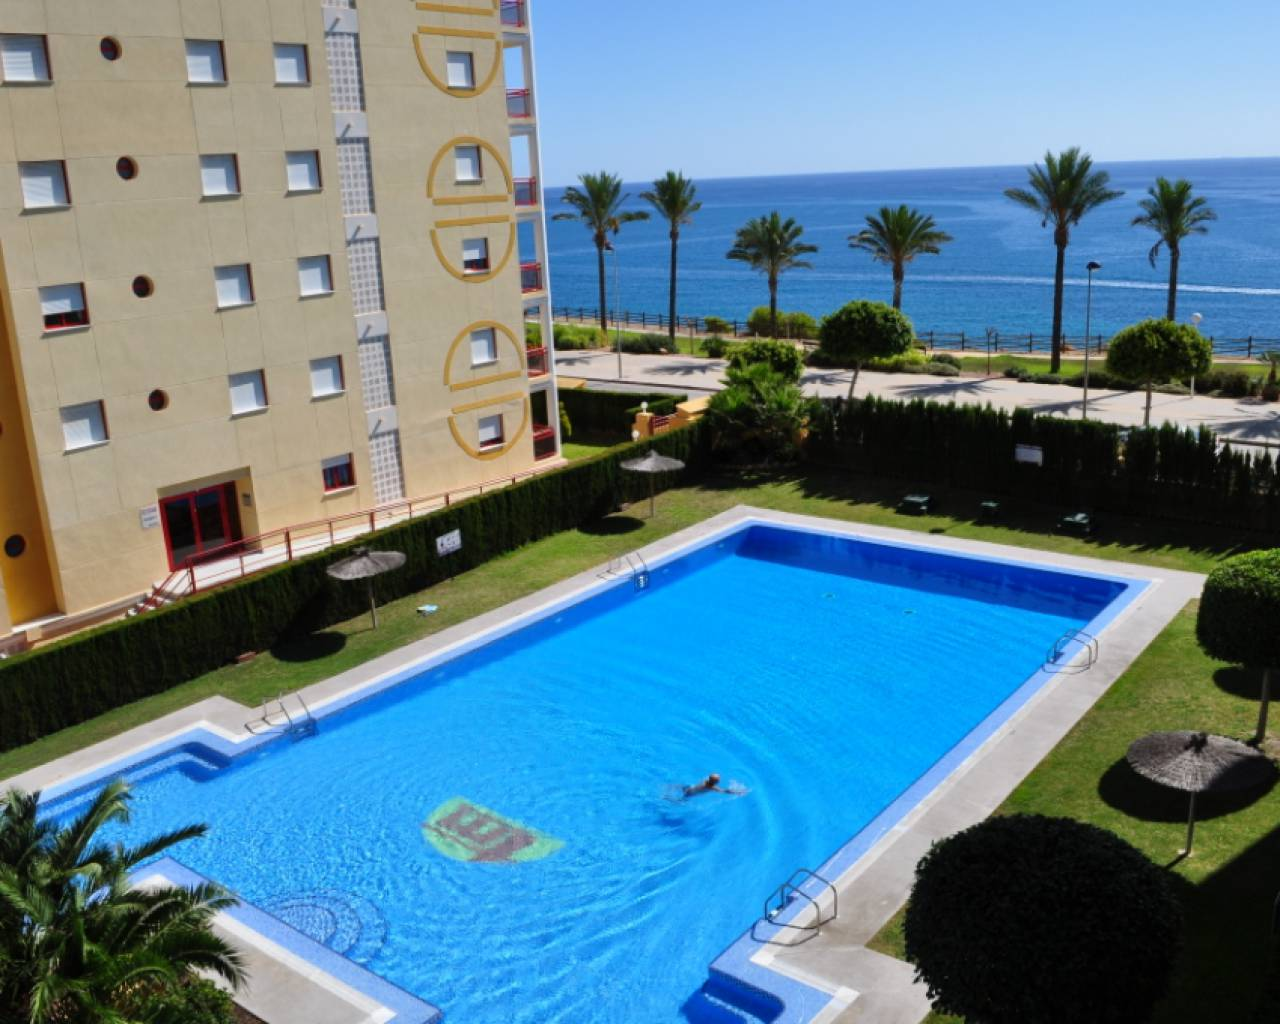 Sale - Apartment / Flat - Villajoyosa - Playa Torres